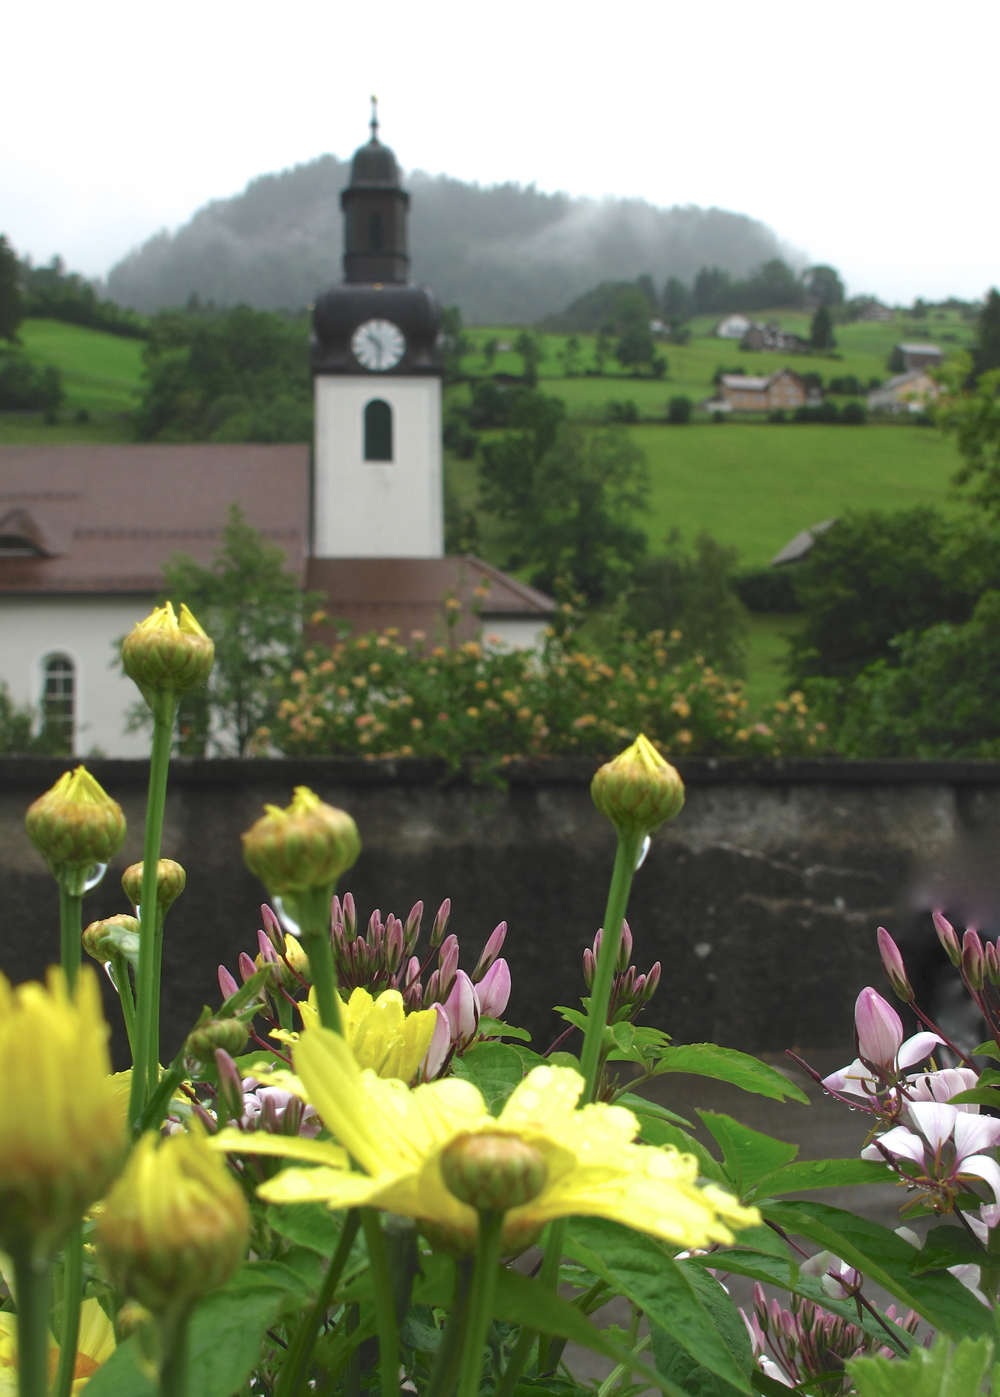 A church and a small village and flowers in Austria on a rainy day